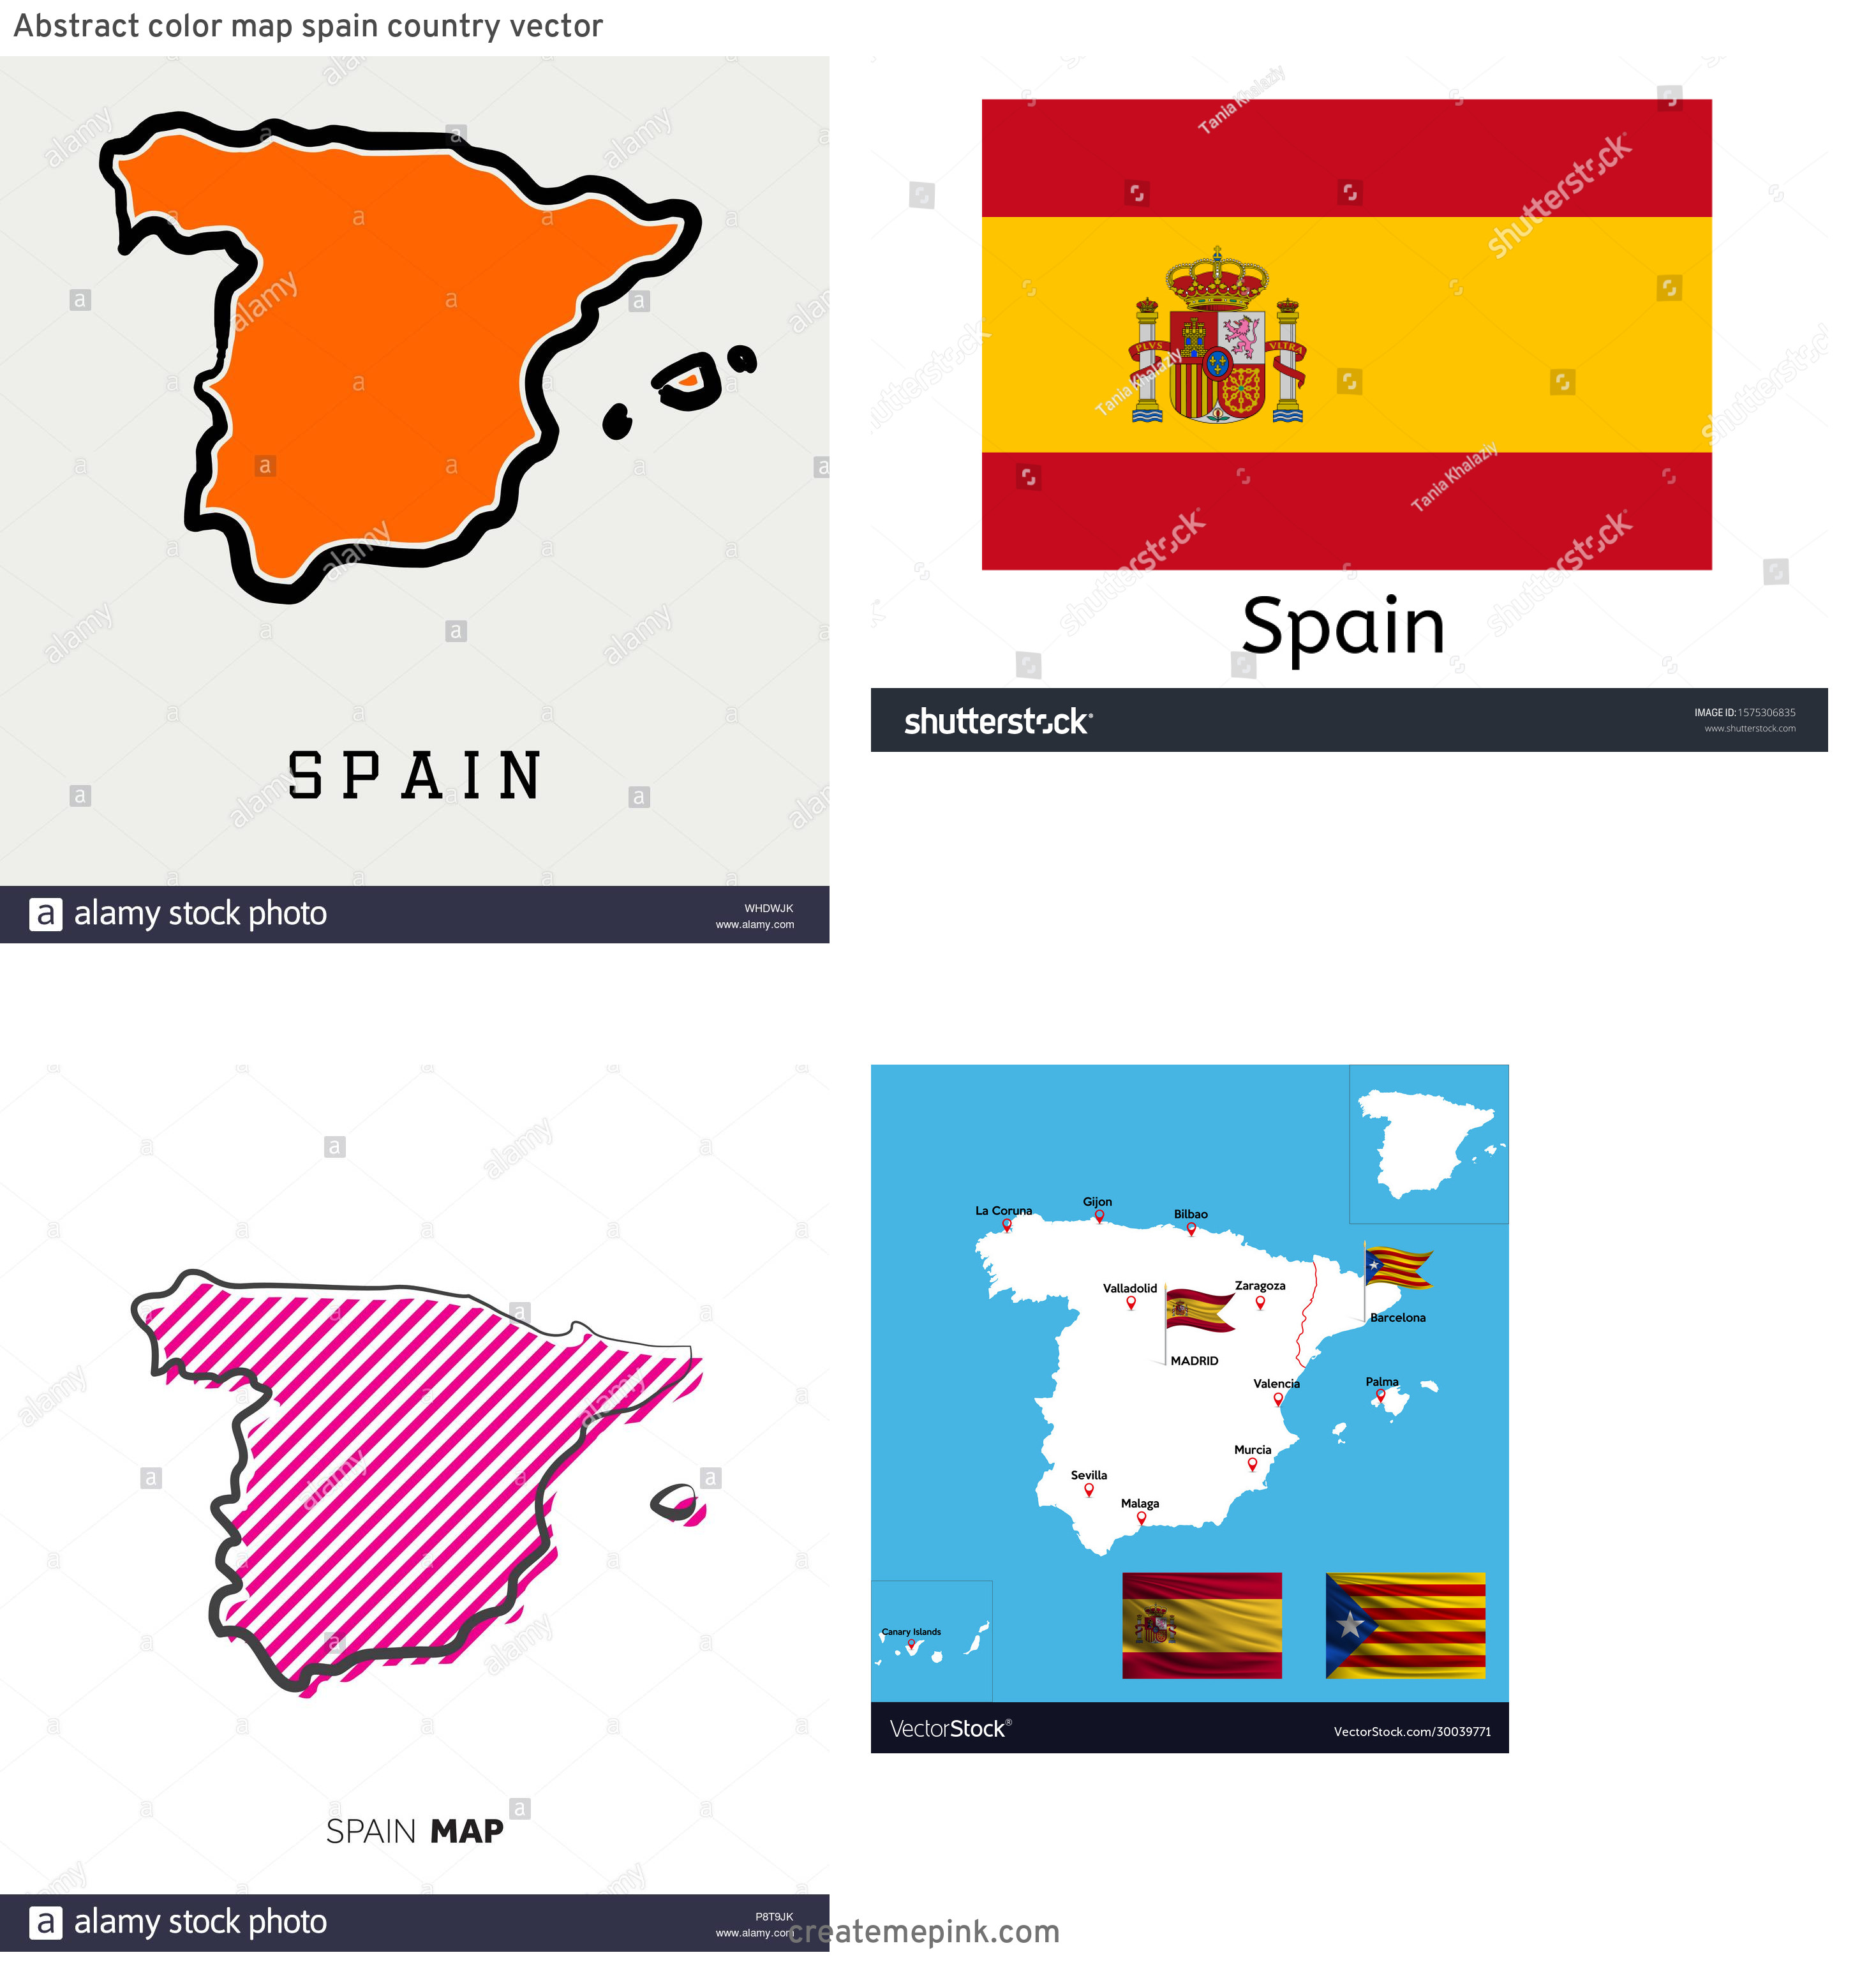 Spain Country Vectors Line: Abstract Color Map Spain Country Vector